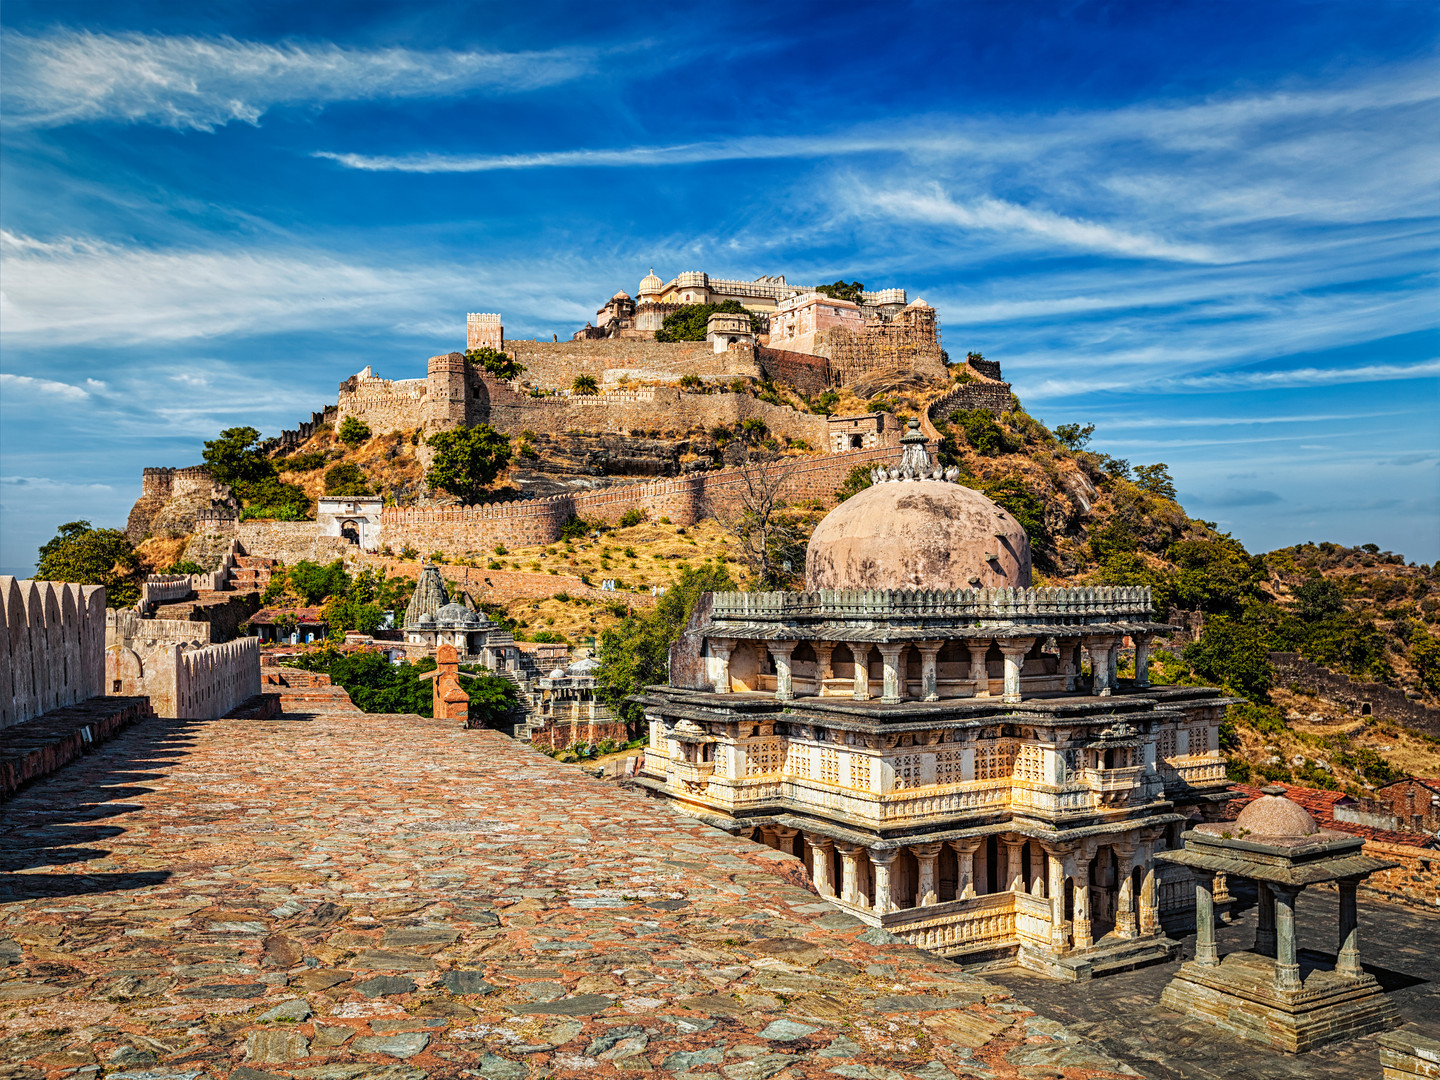 kumbhalgarh-fort-india-VYLPG37.jpg